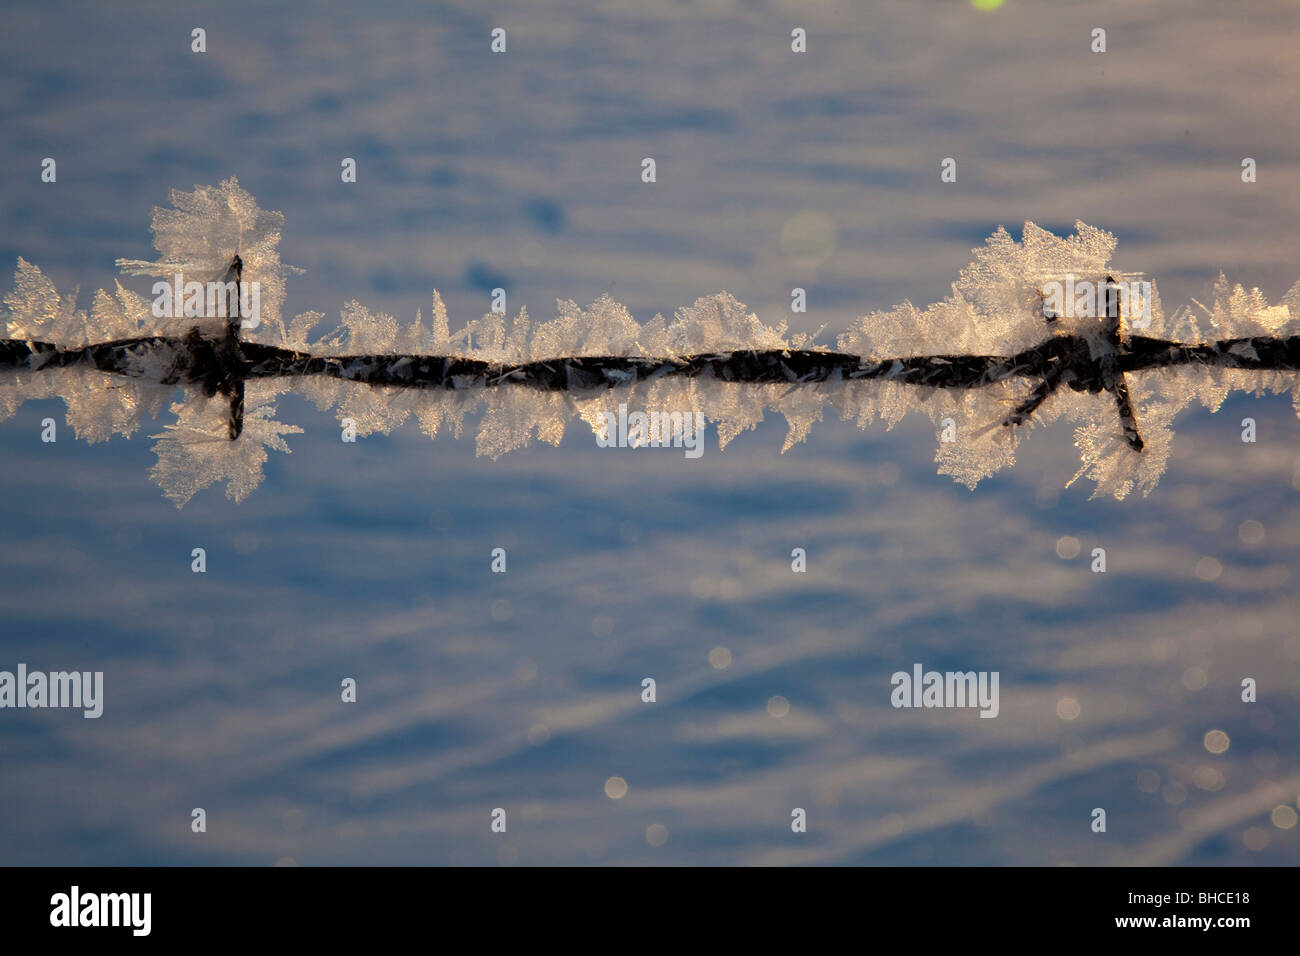 New Palestine, Indiana - Frost on a barbed wire fence. - Stock Image